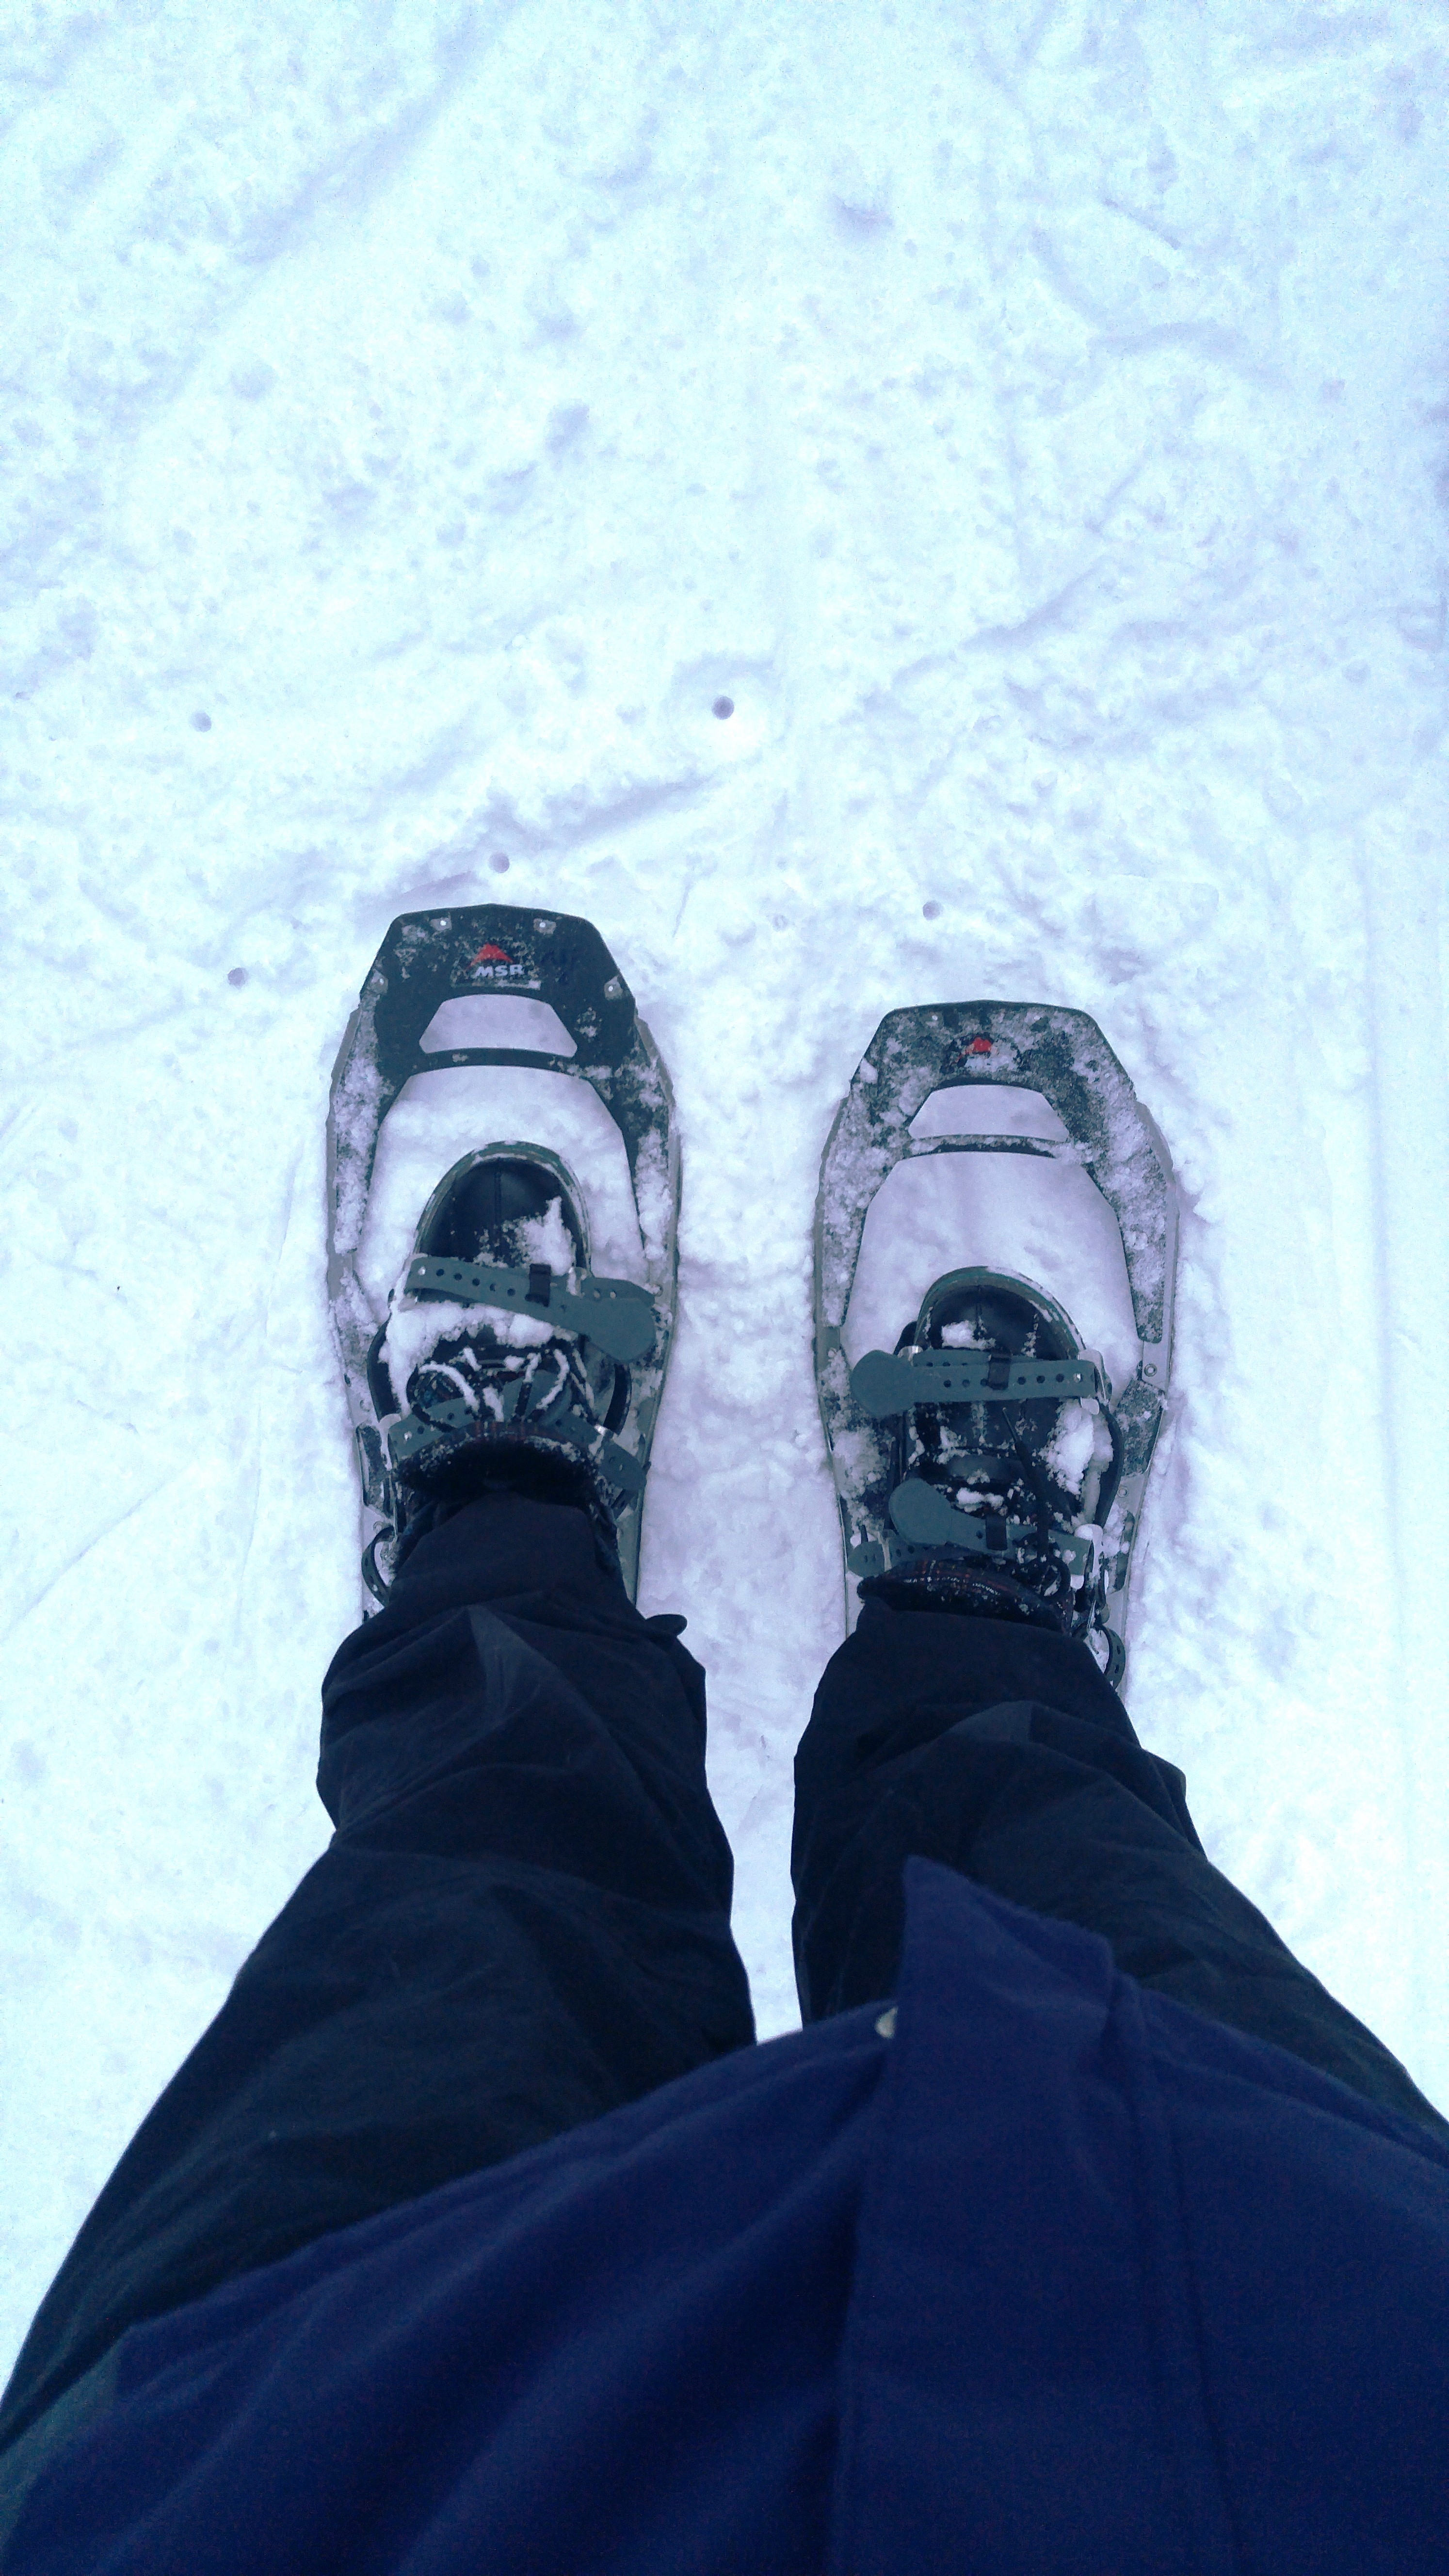 snowshoes_feet